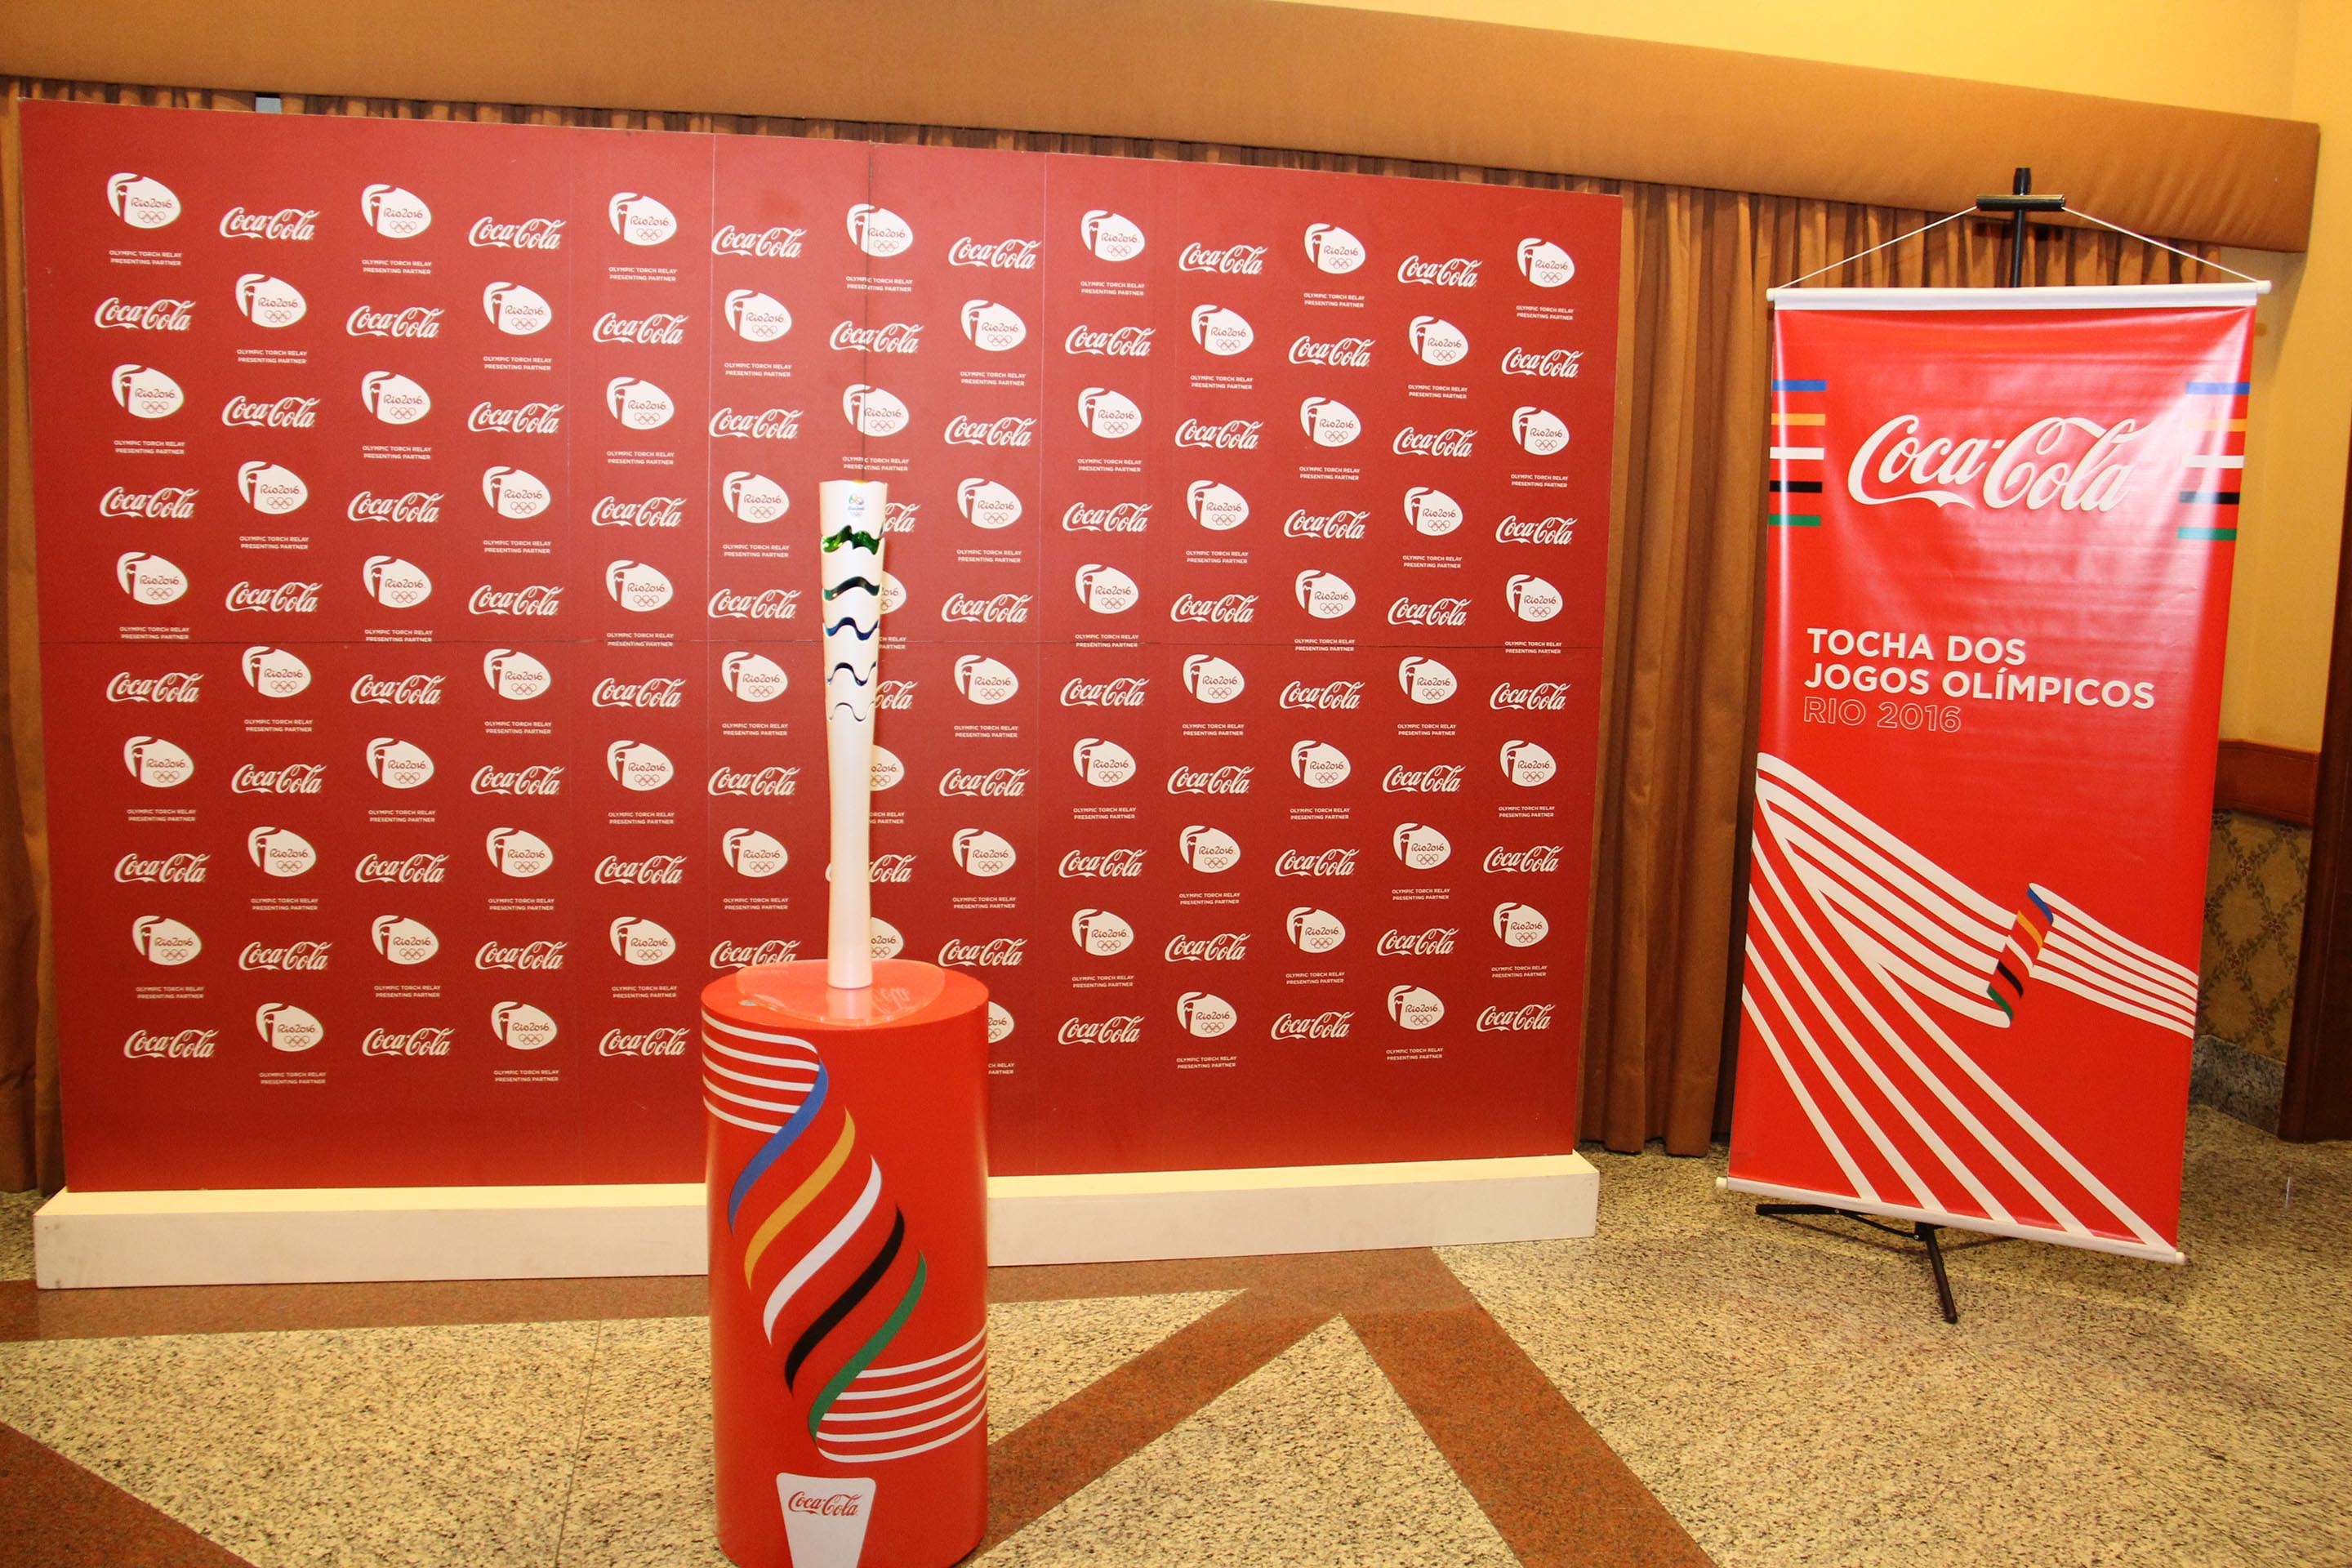 Coca-Cola presenteou a 28ª Super Rio Expofood com o símbolo do maior evento esportivo do mundo